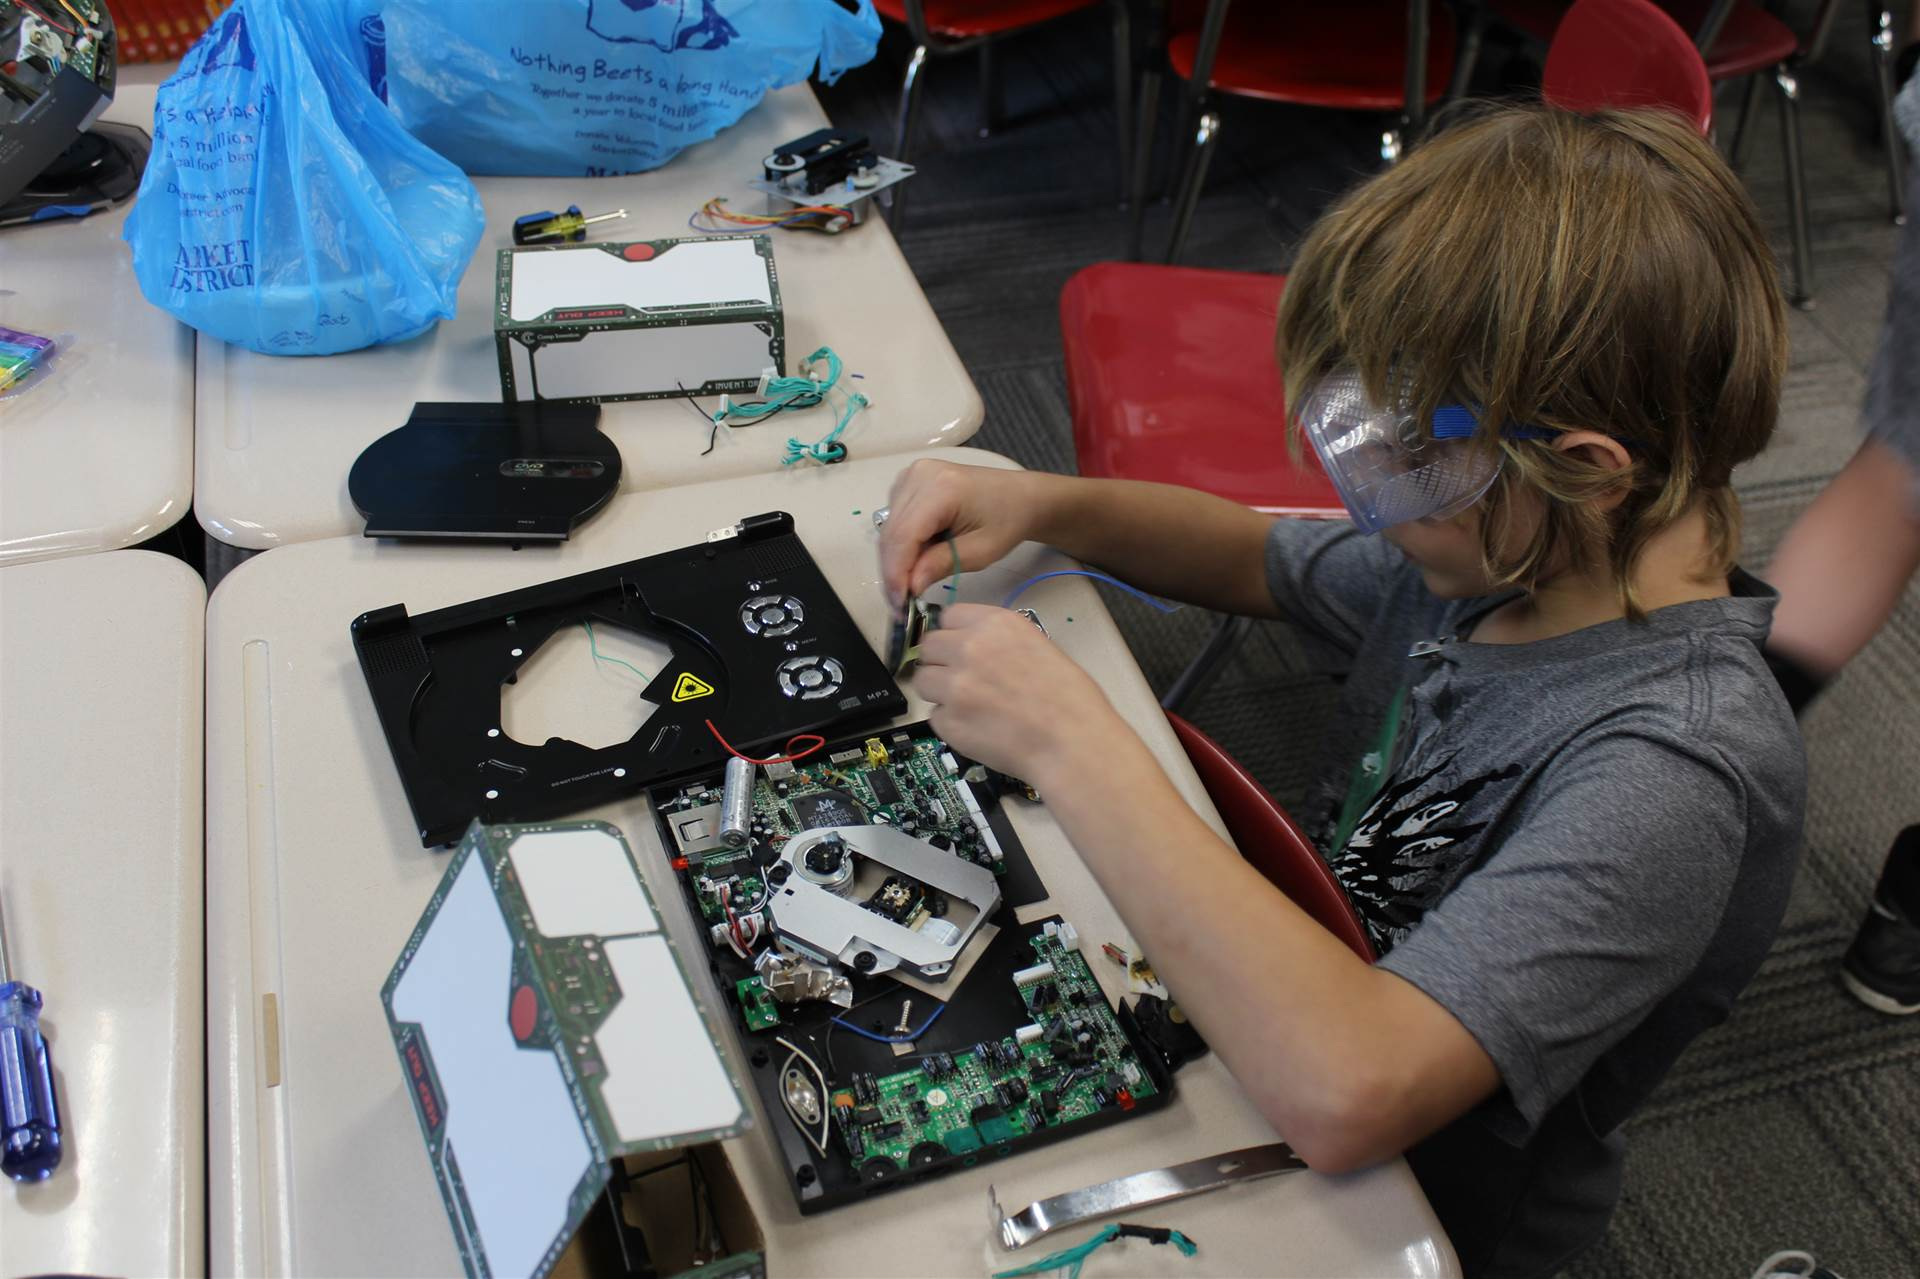 Students were able to take apart a piece of equipment as part of a reverse engineering activity.